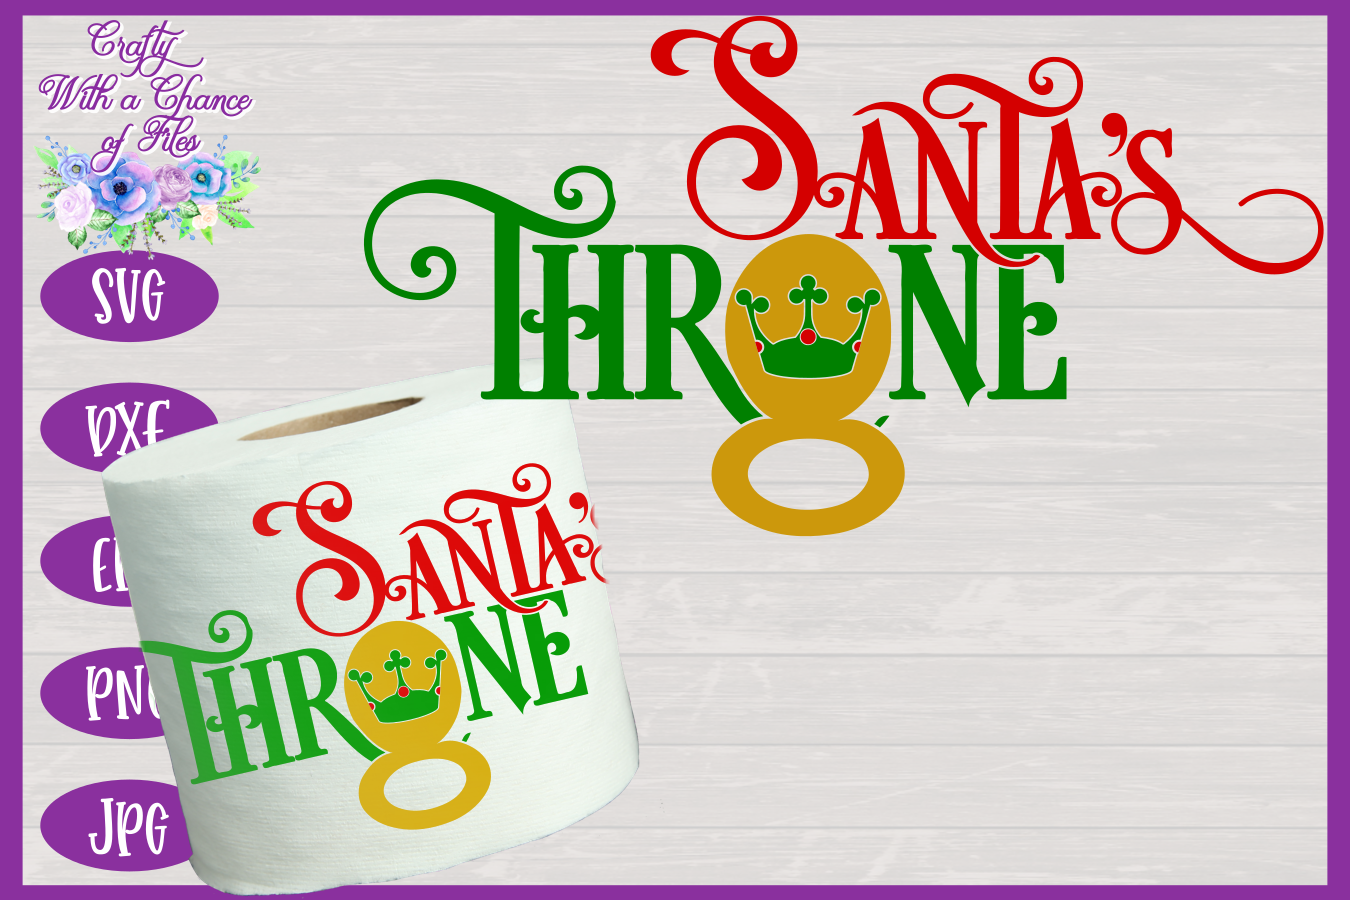 Christmas Toilet Paper SVG - Funny Gag Gift Design example image 1